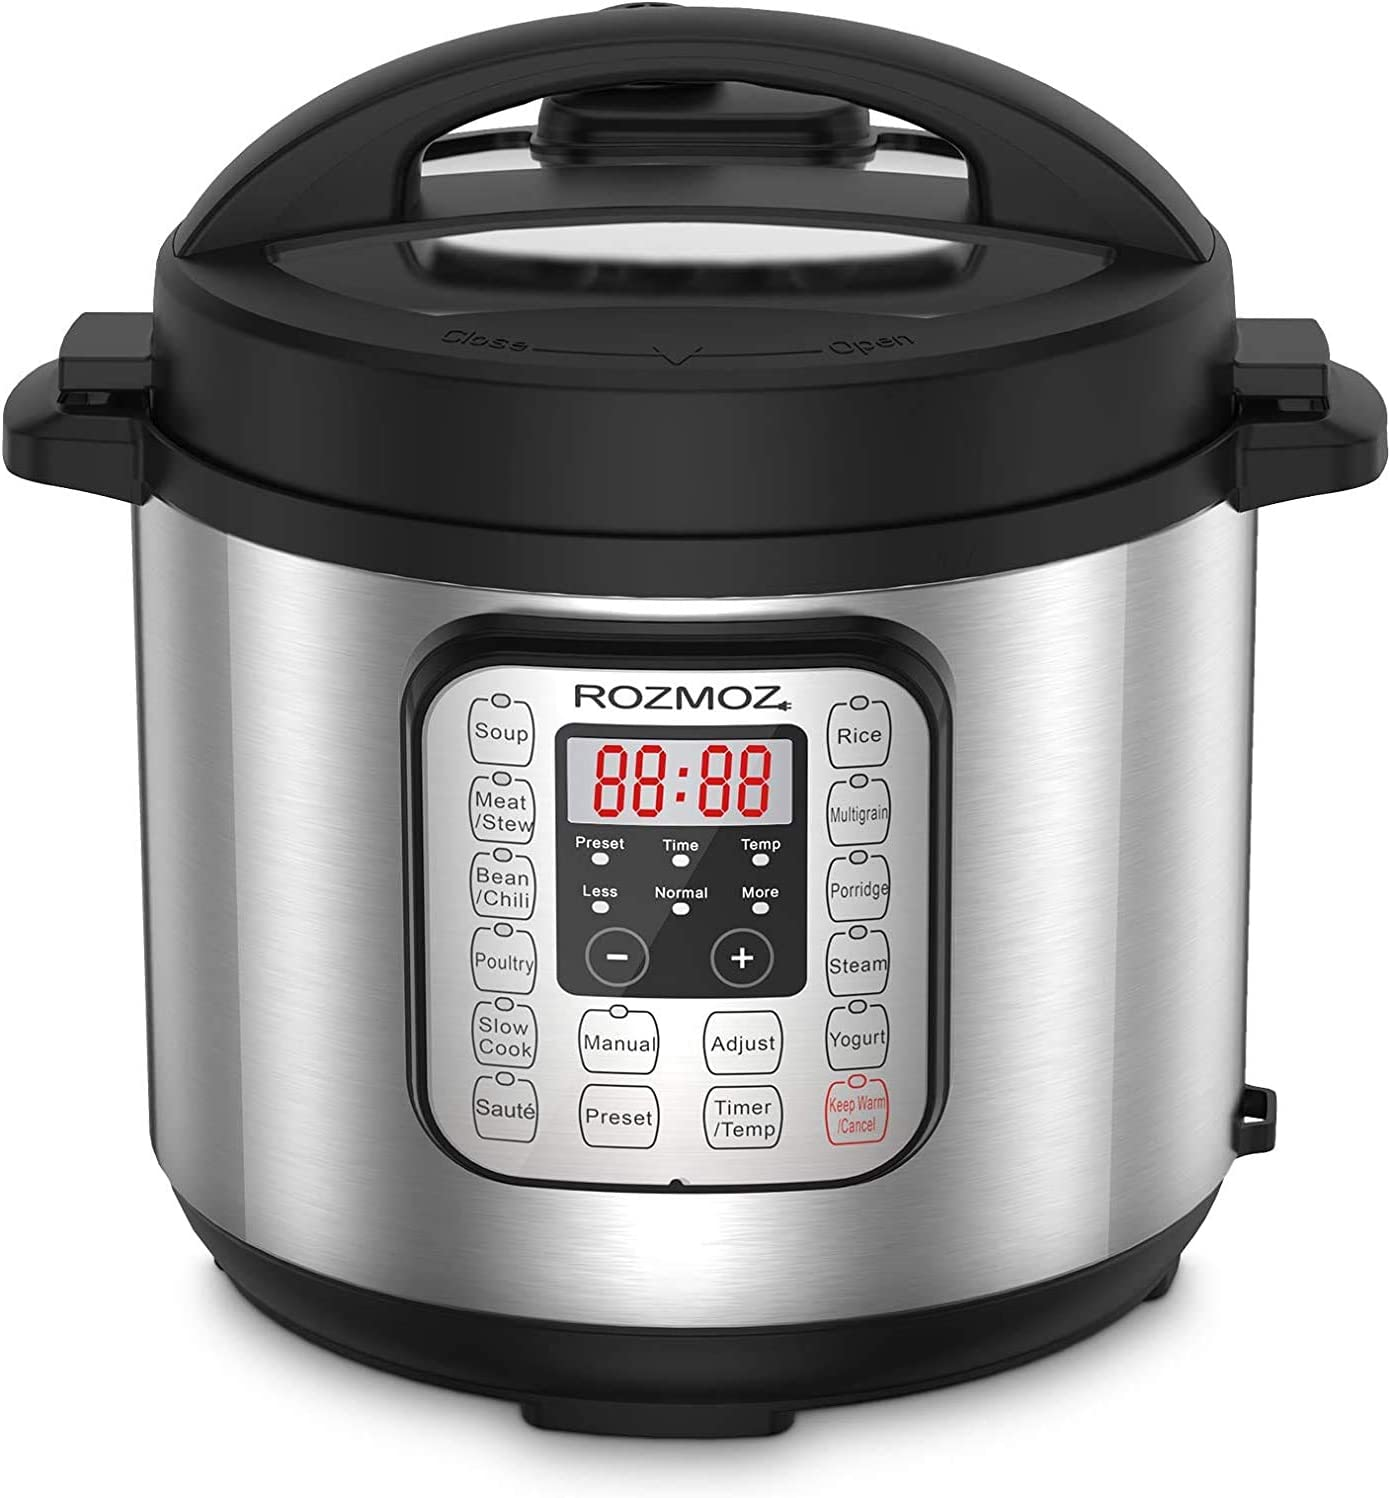 Rozmoz 11-in-1 Electric Pressure Cooker Instant Stainless Steel Pot, Slow Cooker, Steamer, Saute, Yogurt Maker, Warmer, Rice Cooker with Deluxe Accessory kits, 6 Quart